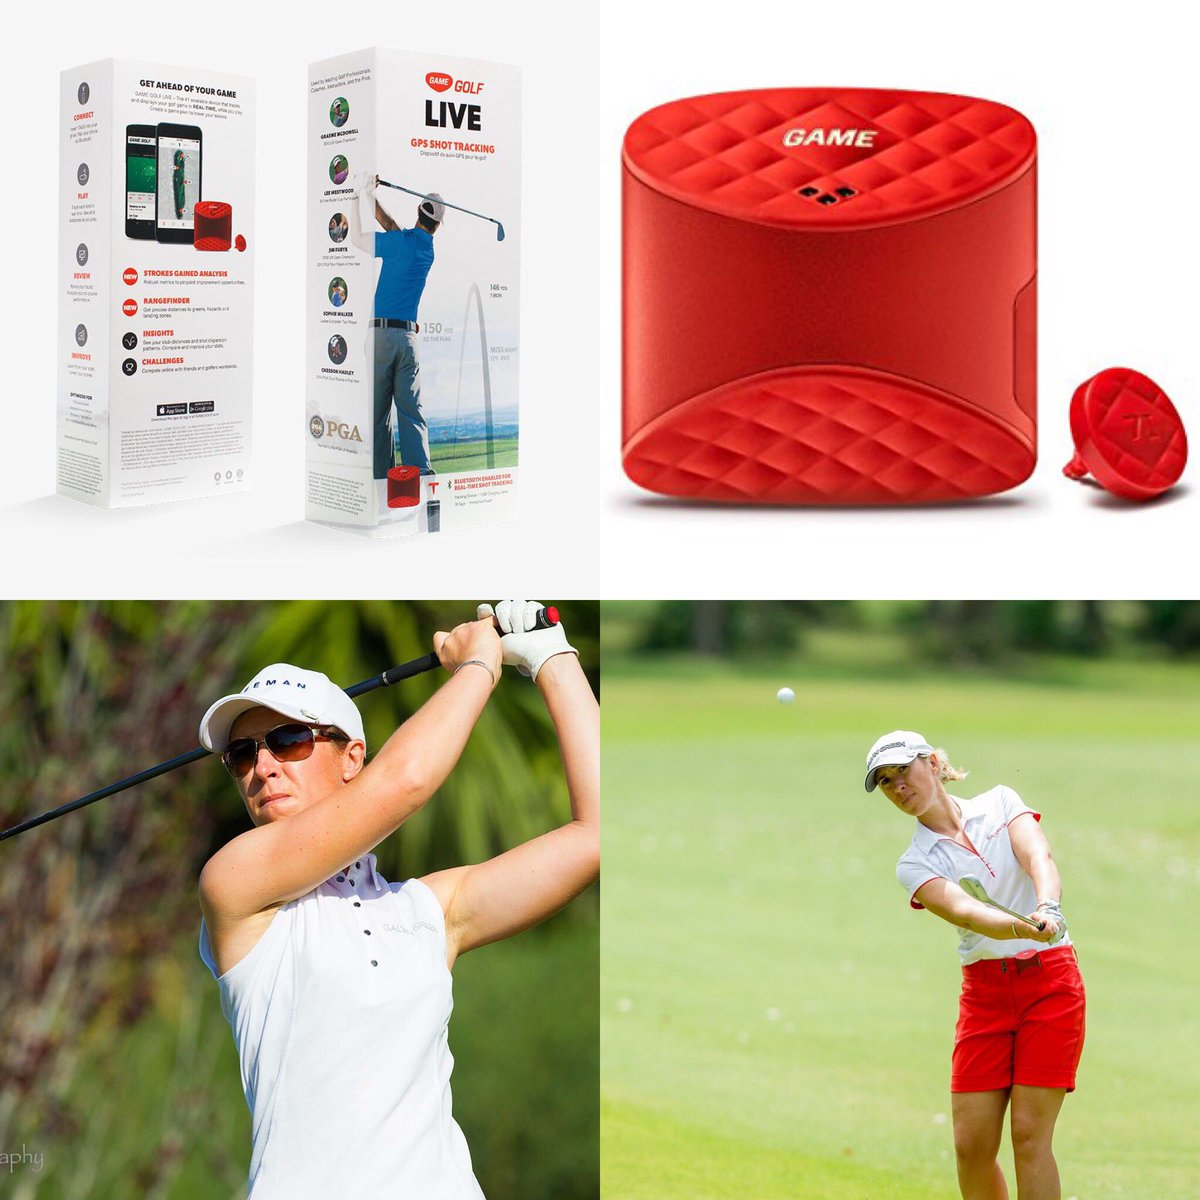 US OPEN GIVEAWAY. RT + Follow myself & @GAMEGOLF to win a device.